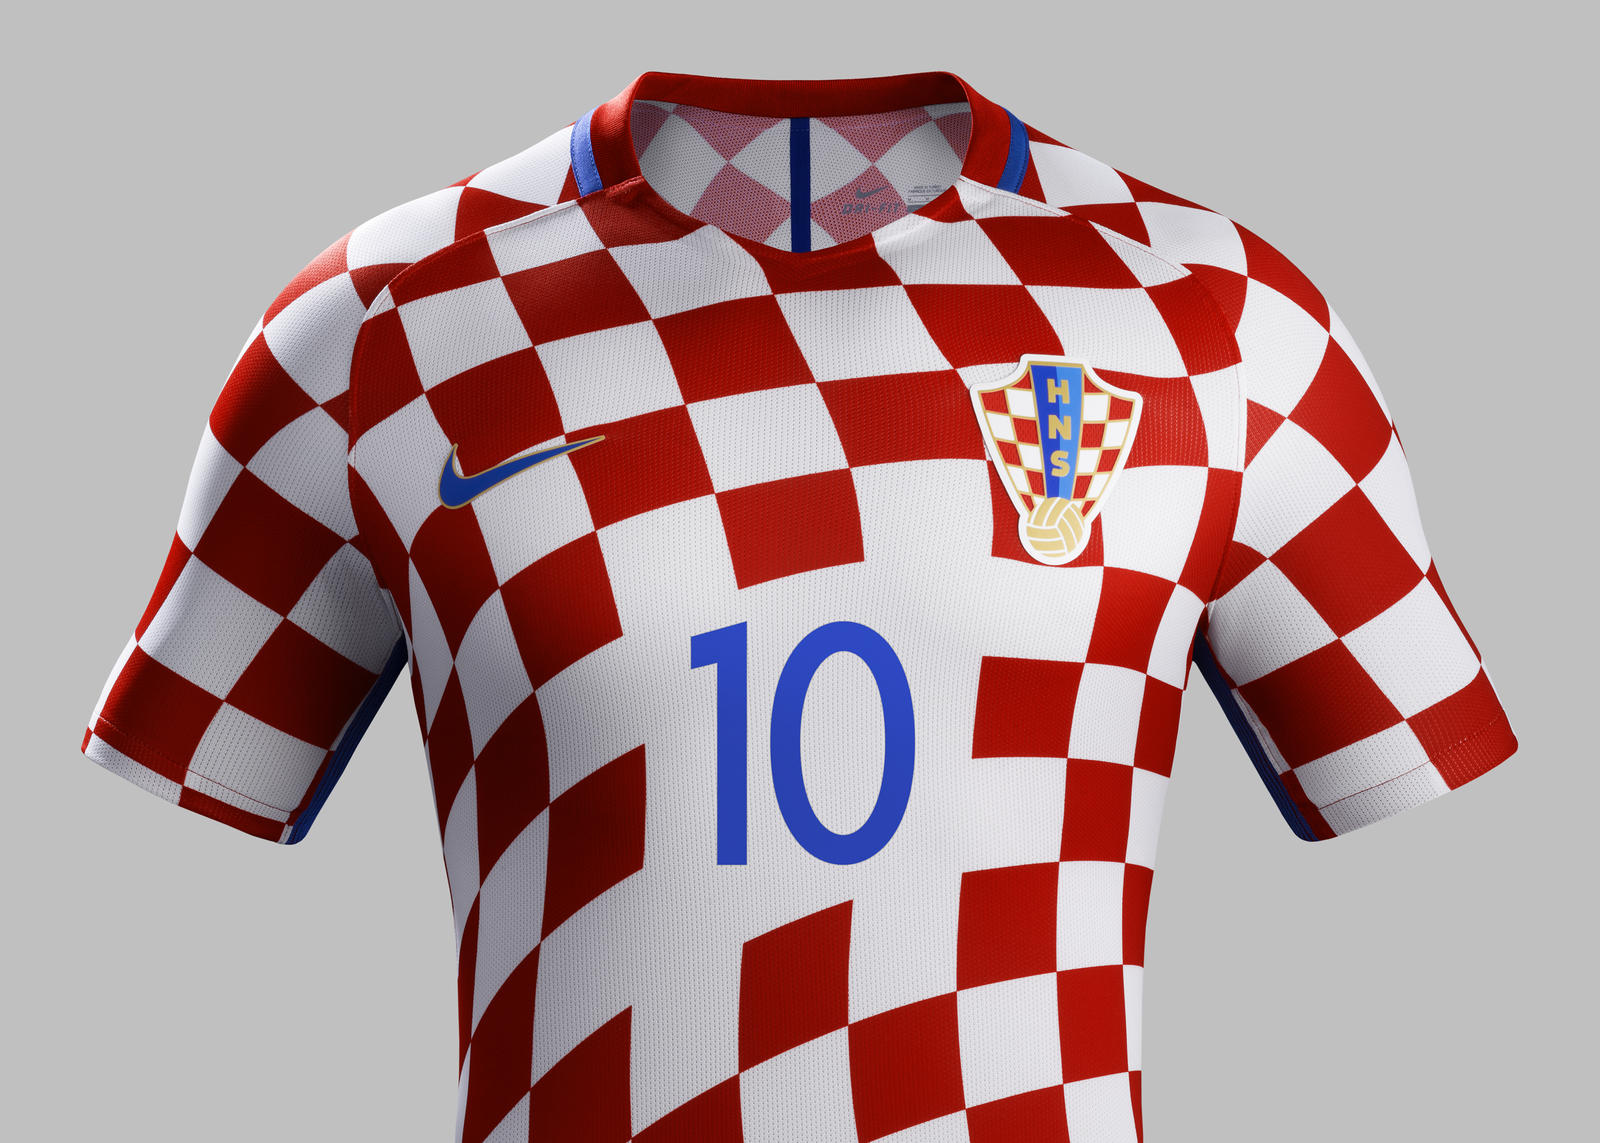 574fa29d7a9 Croatia 2016 National Football Kits - Nike News